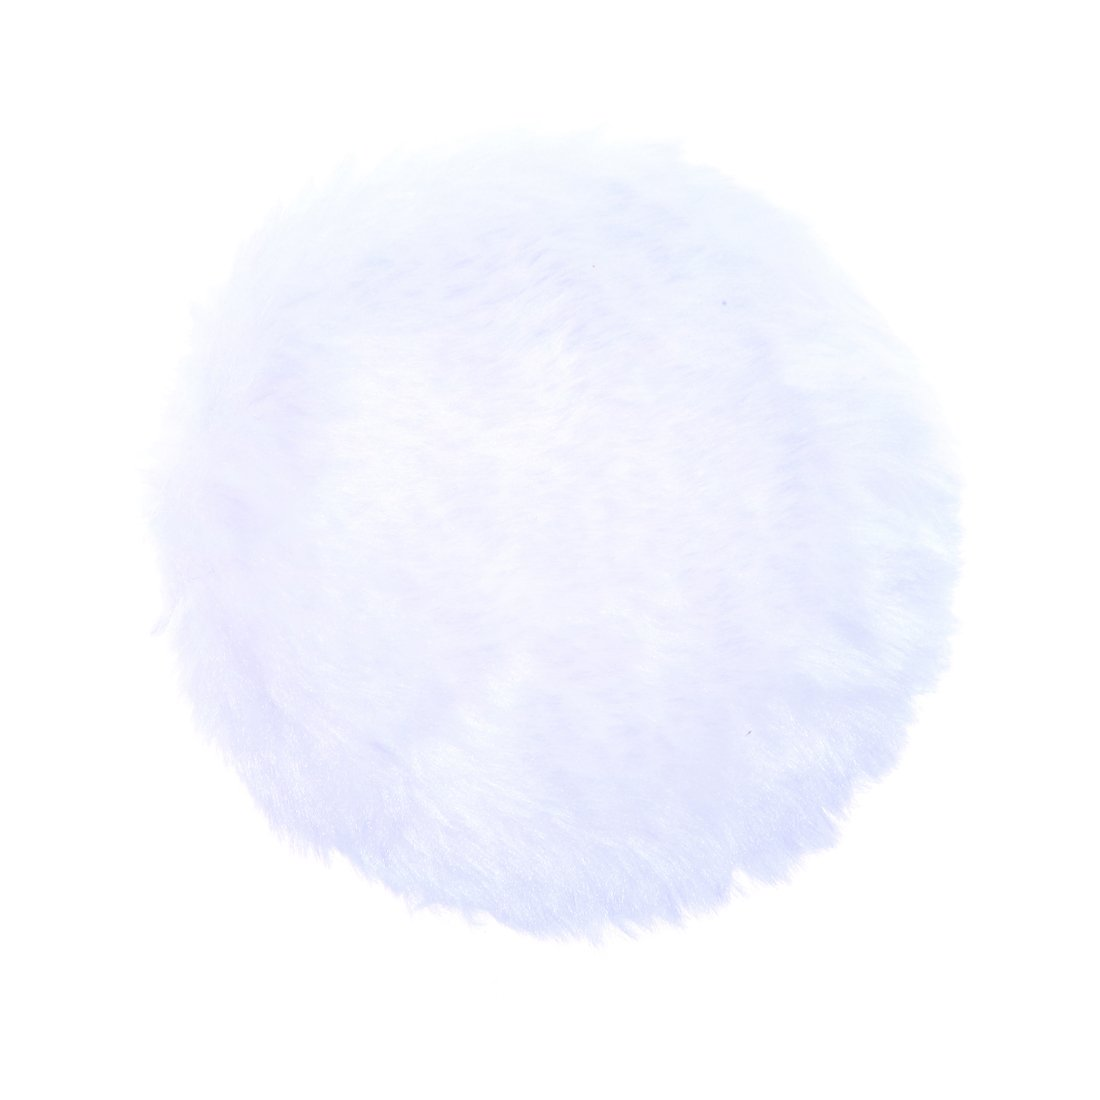 Anleolife 5Pcs White Large Fluffy Puffs For Body Powder Washable Face Powder 3 inch Blending Sponge Puff Round For Foundation Makeup Velour Puffs 5pcs/package